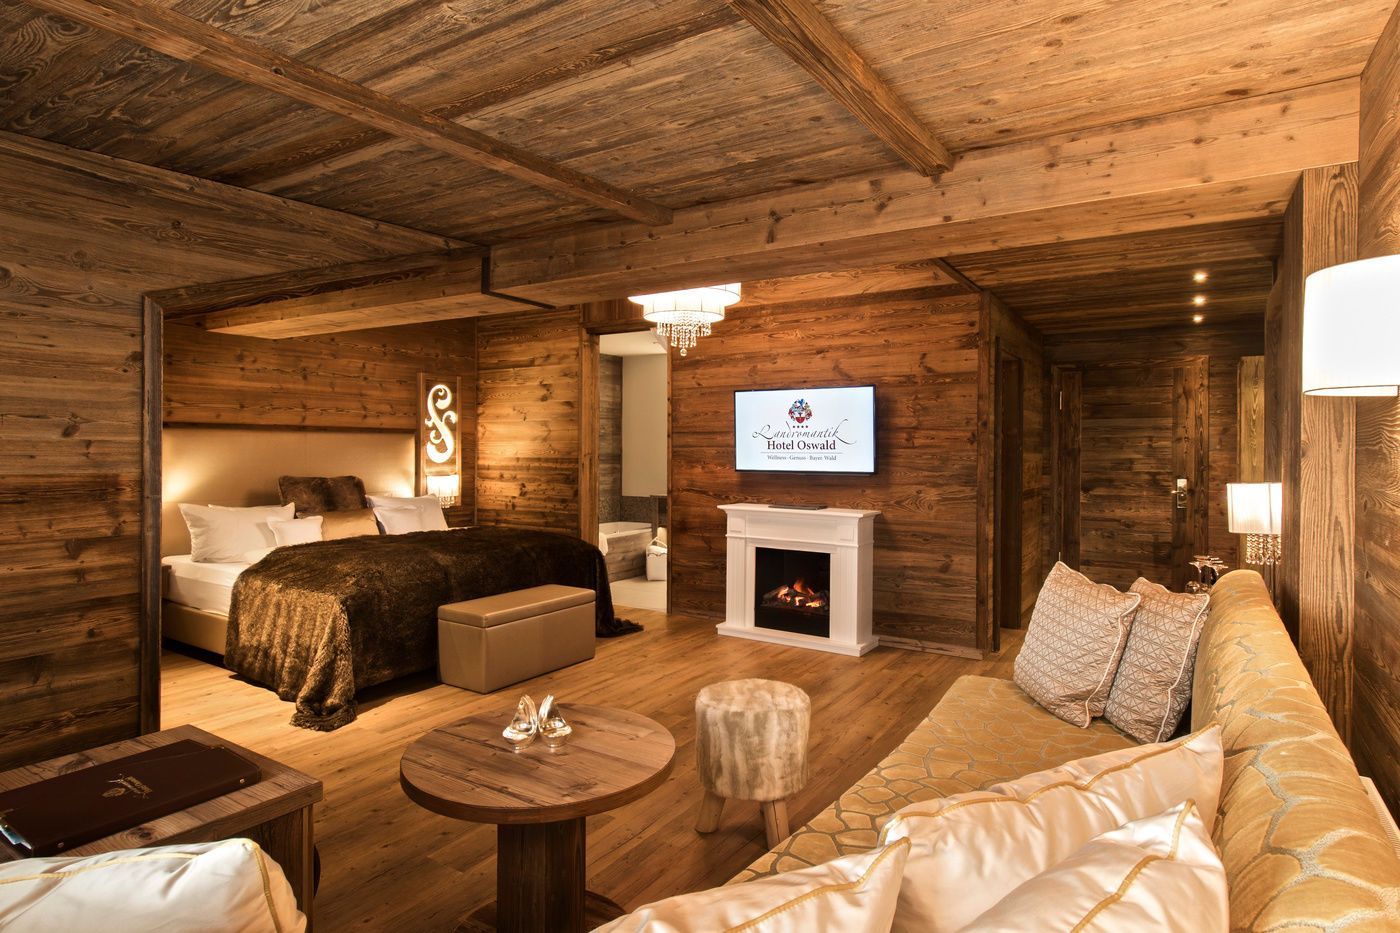 landromantik wellnesshotel oswald bayerischer wald ger urlaub in 2019 pinterest. Black Bedroom Furniture Sets. Home Design Ideas